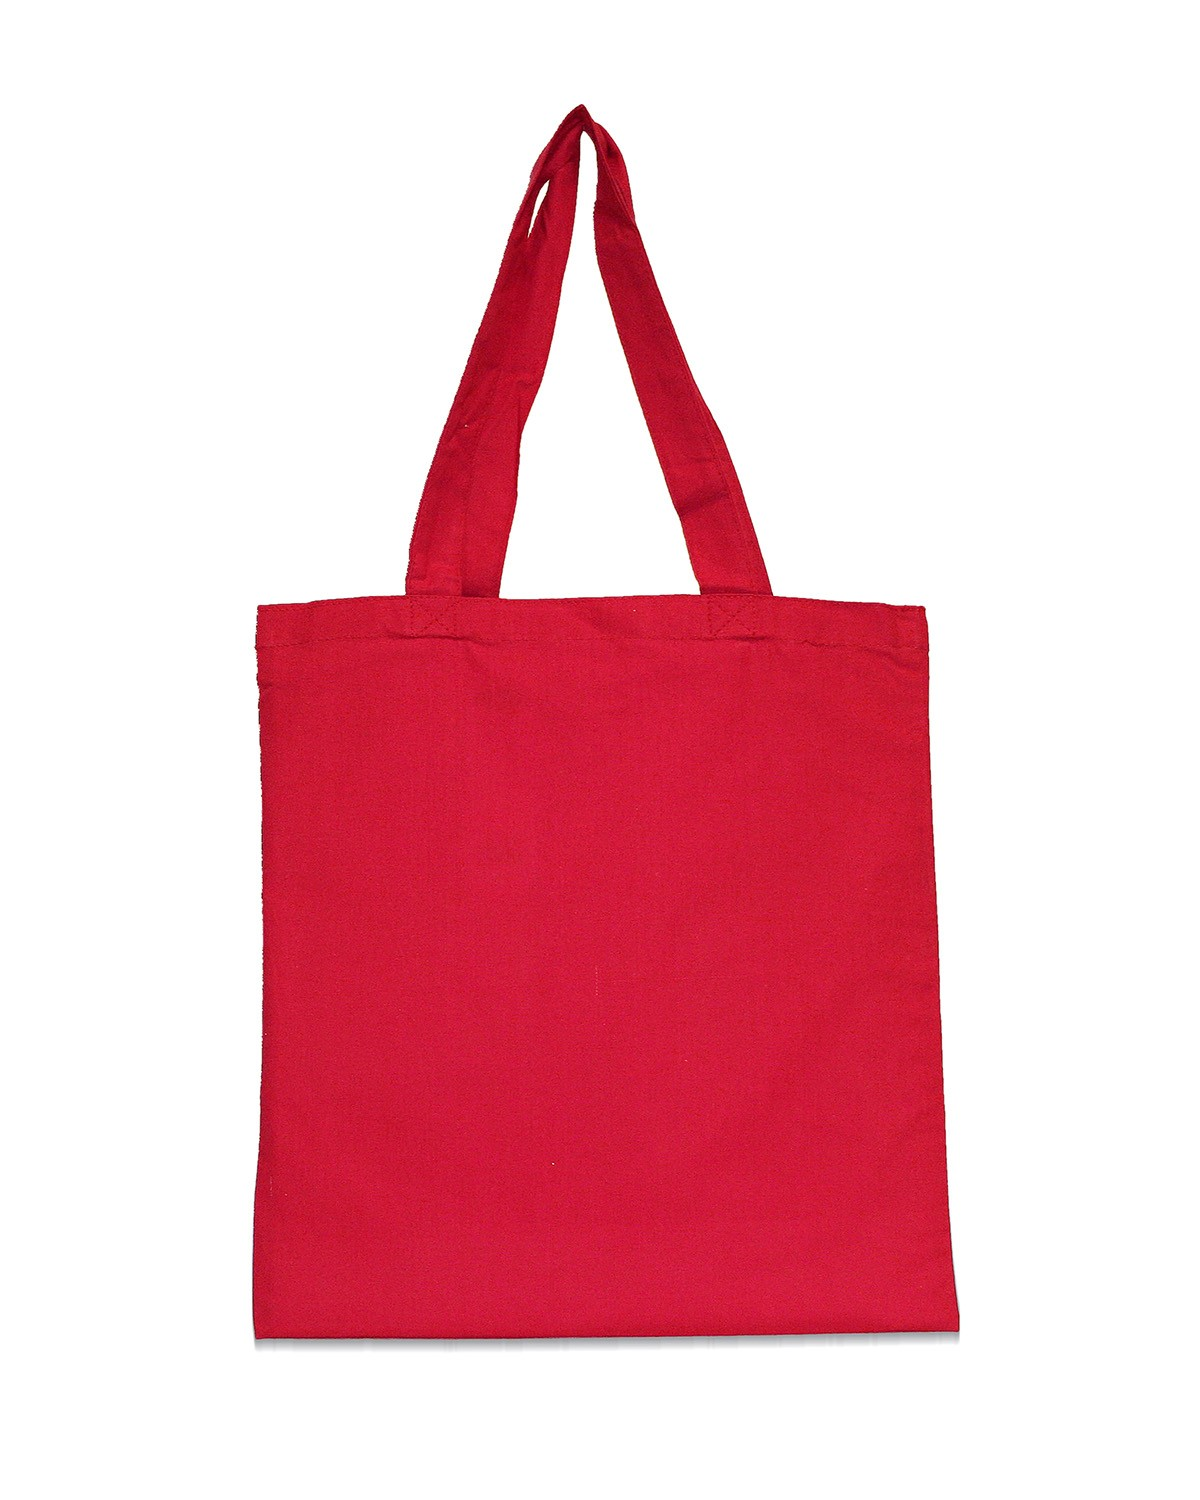 9860 Liberty Bags RED